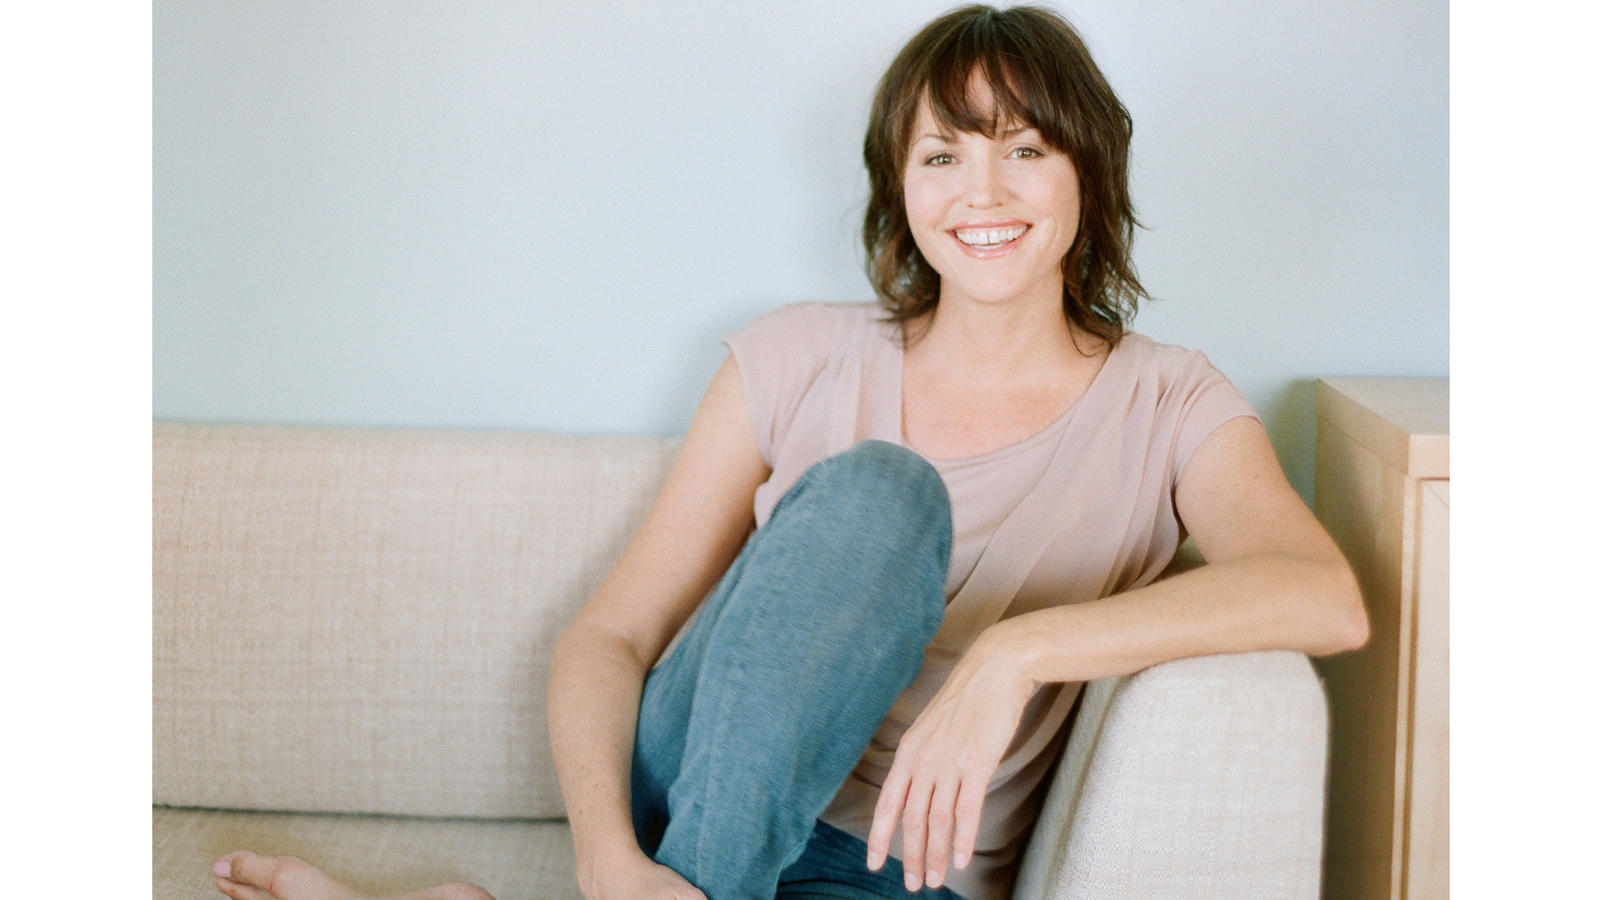 As 'CSI' comes to a close, actress Jorja Fox is open to an uncertain future (Los Angeles Times)